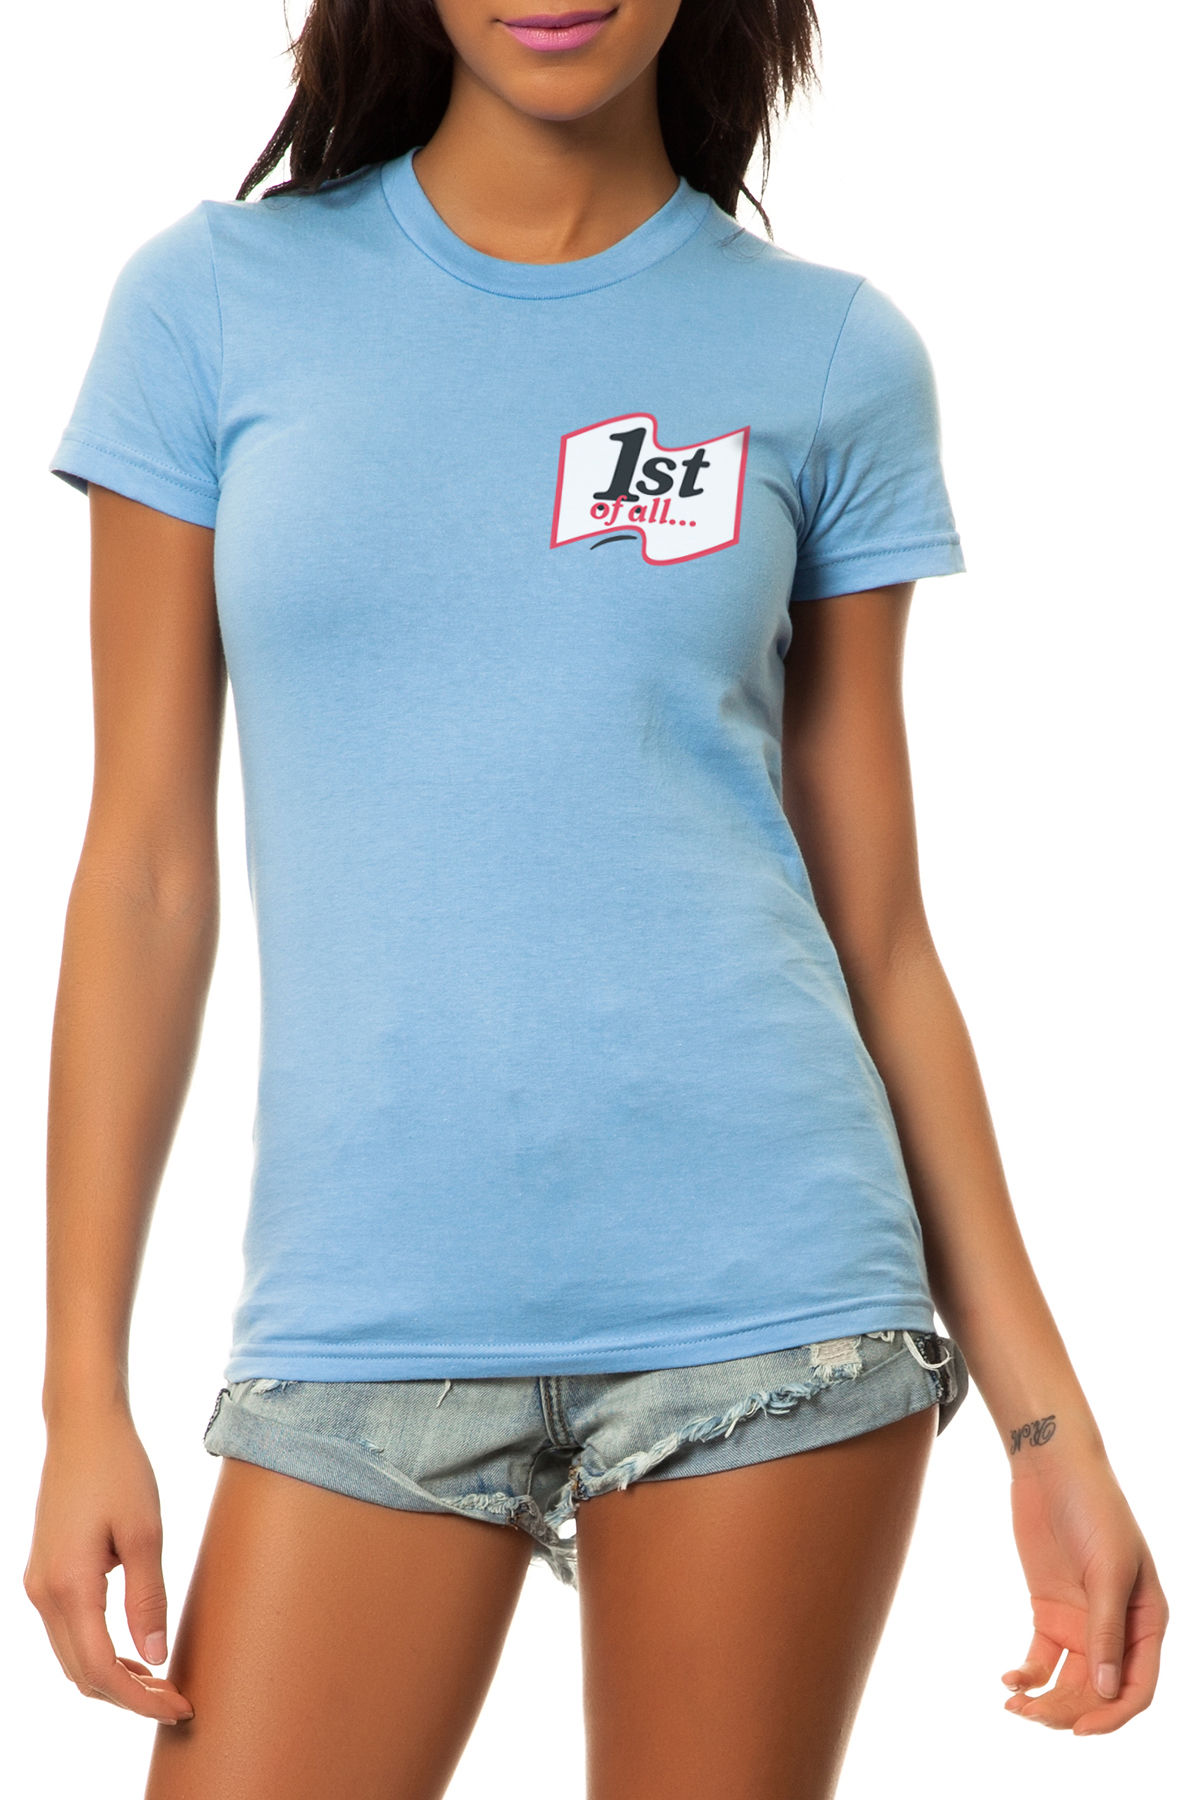 The 1st of All Tee in Baby Blue